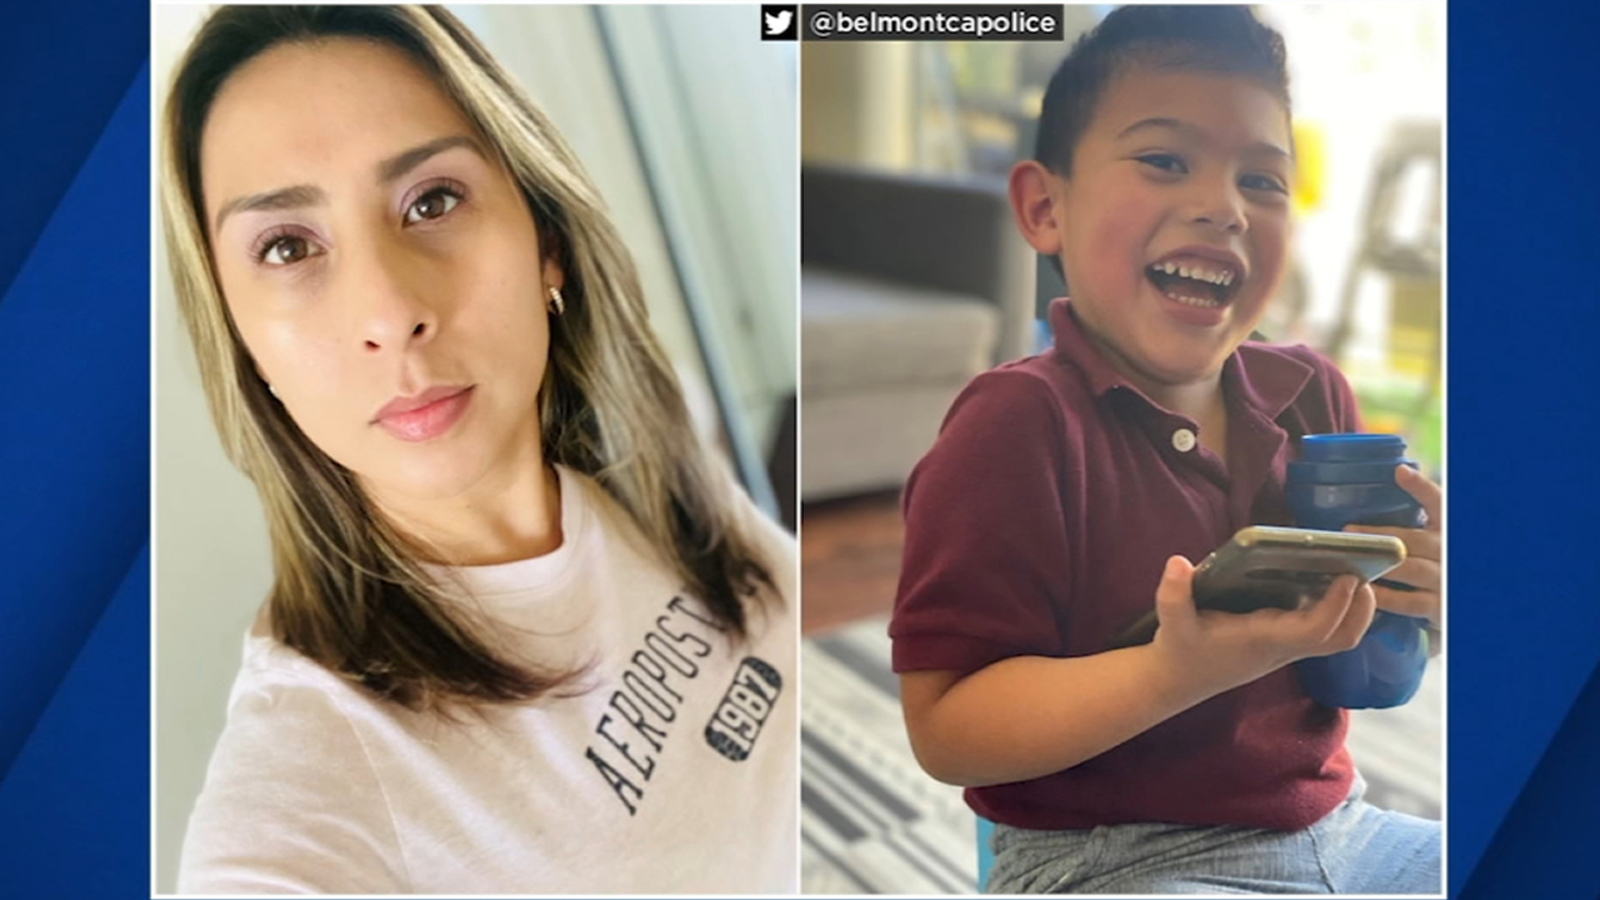 Missing San Mateo mother, 3-year-old son safely located, Belmont police say